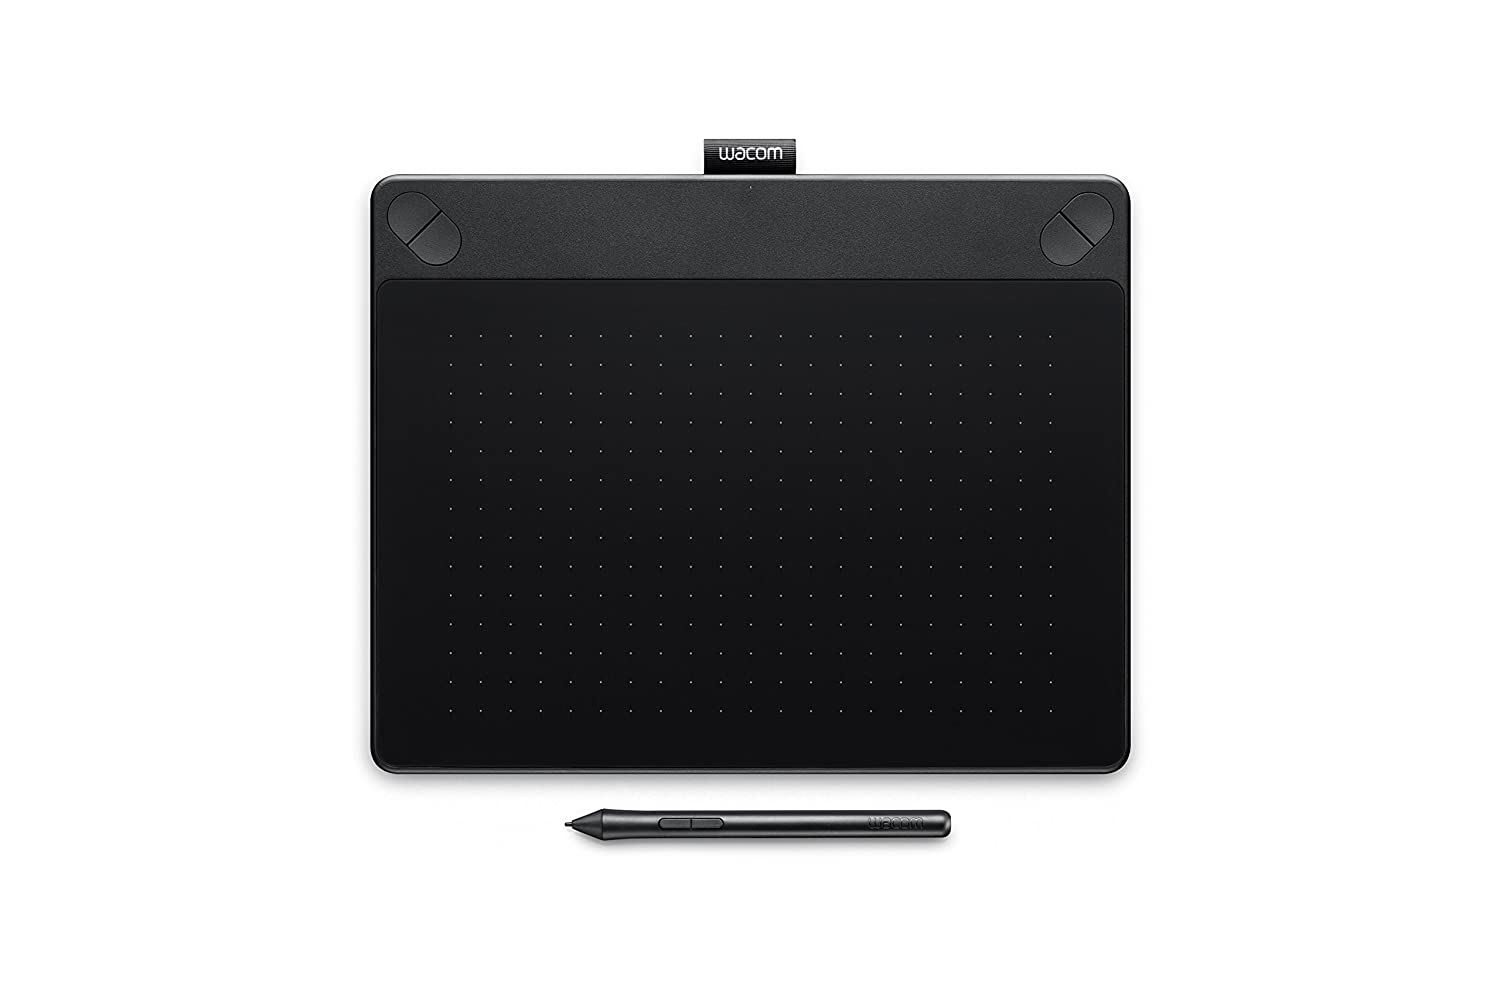 Wacom Intuos D Tableta gráfica color negro